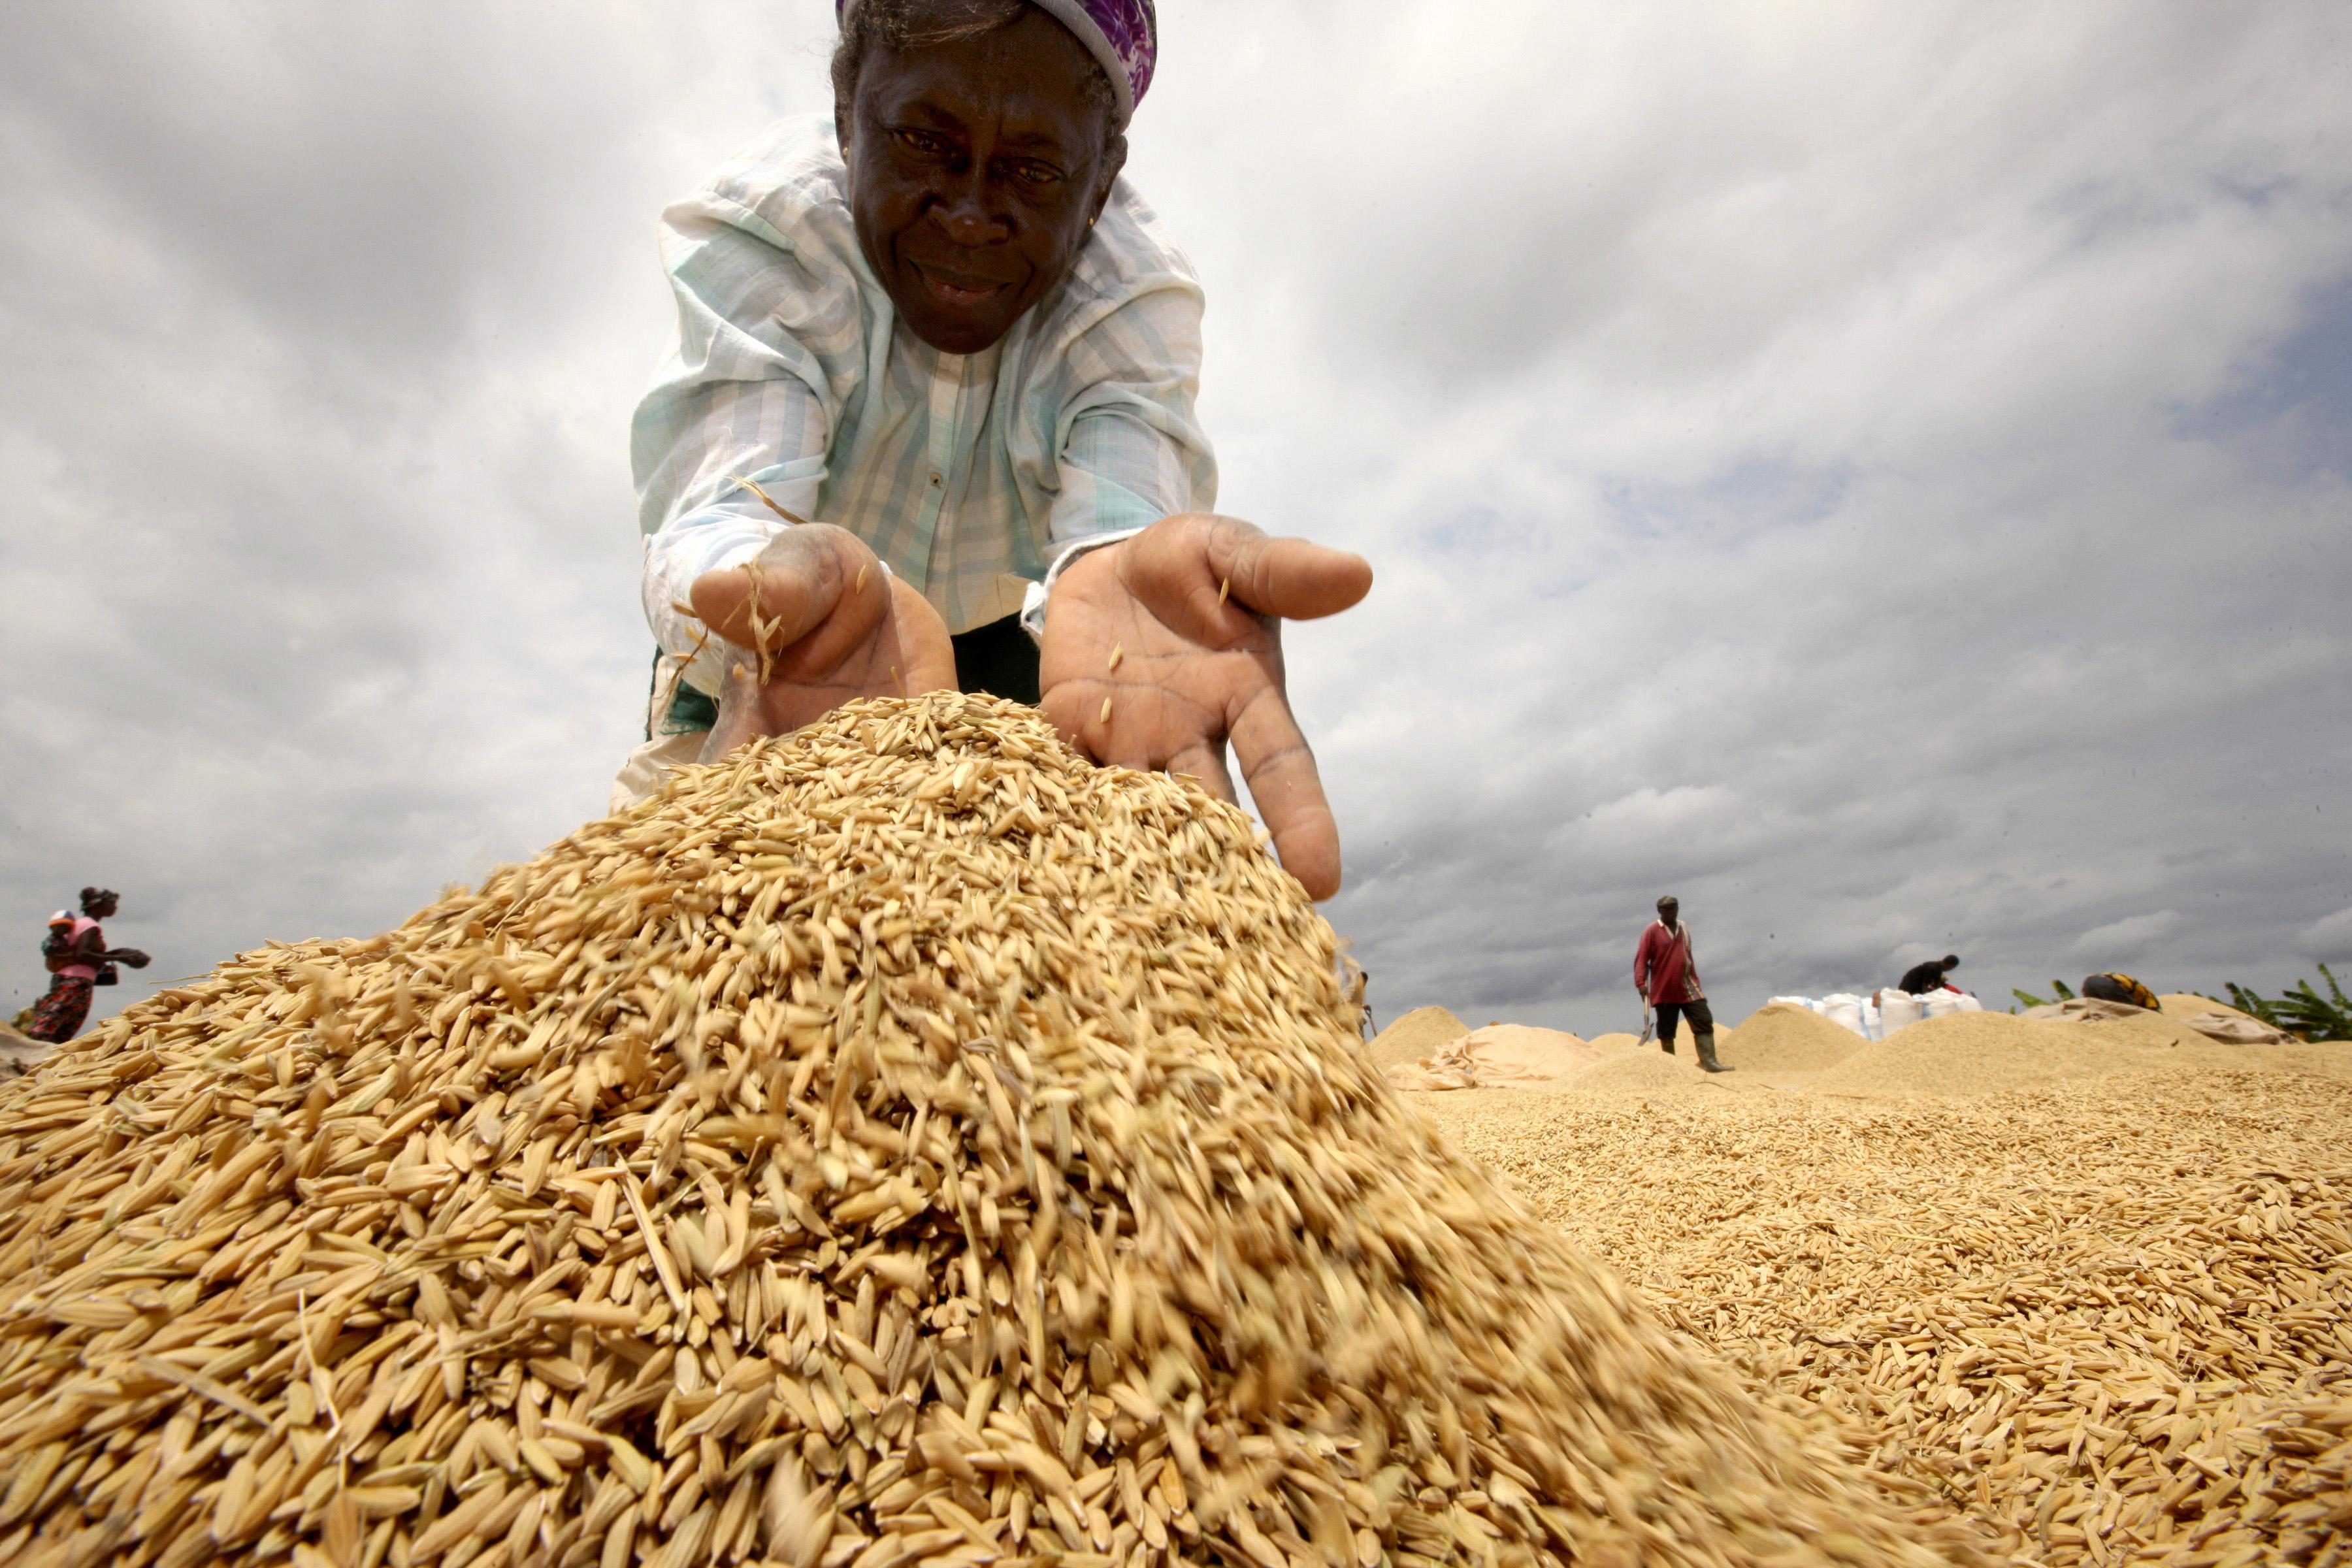 African woman pouring what appear to be grains of wheat